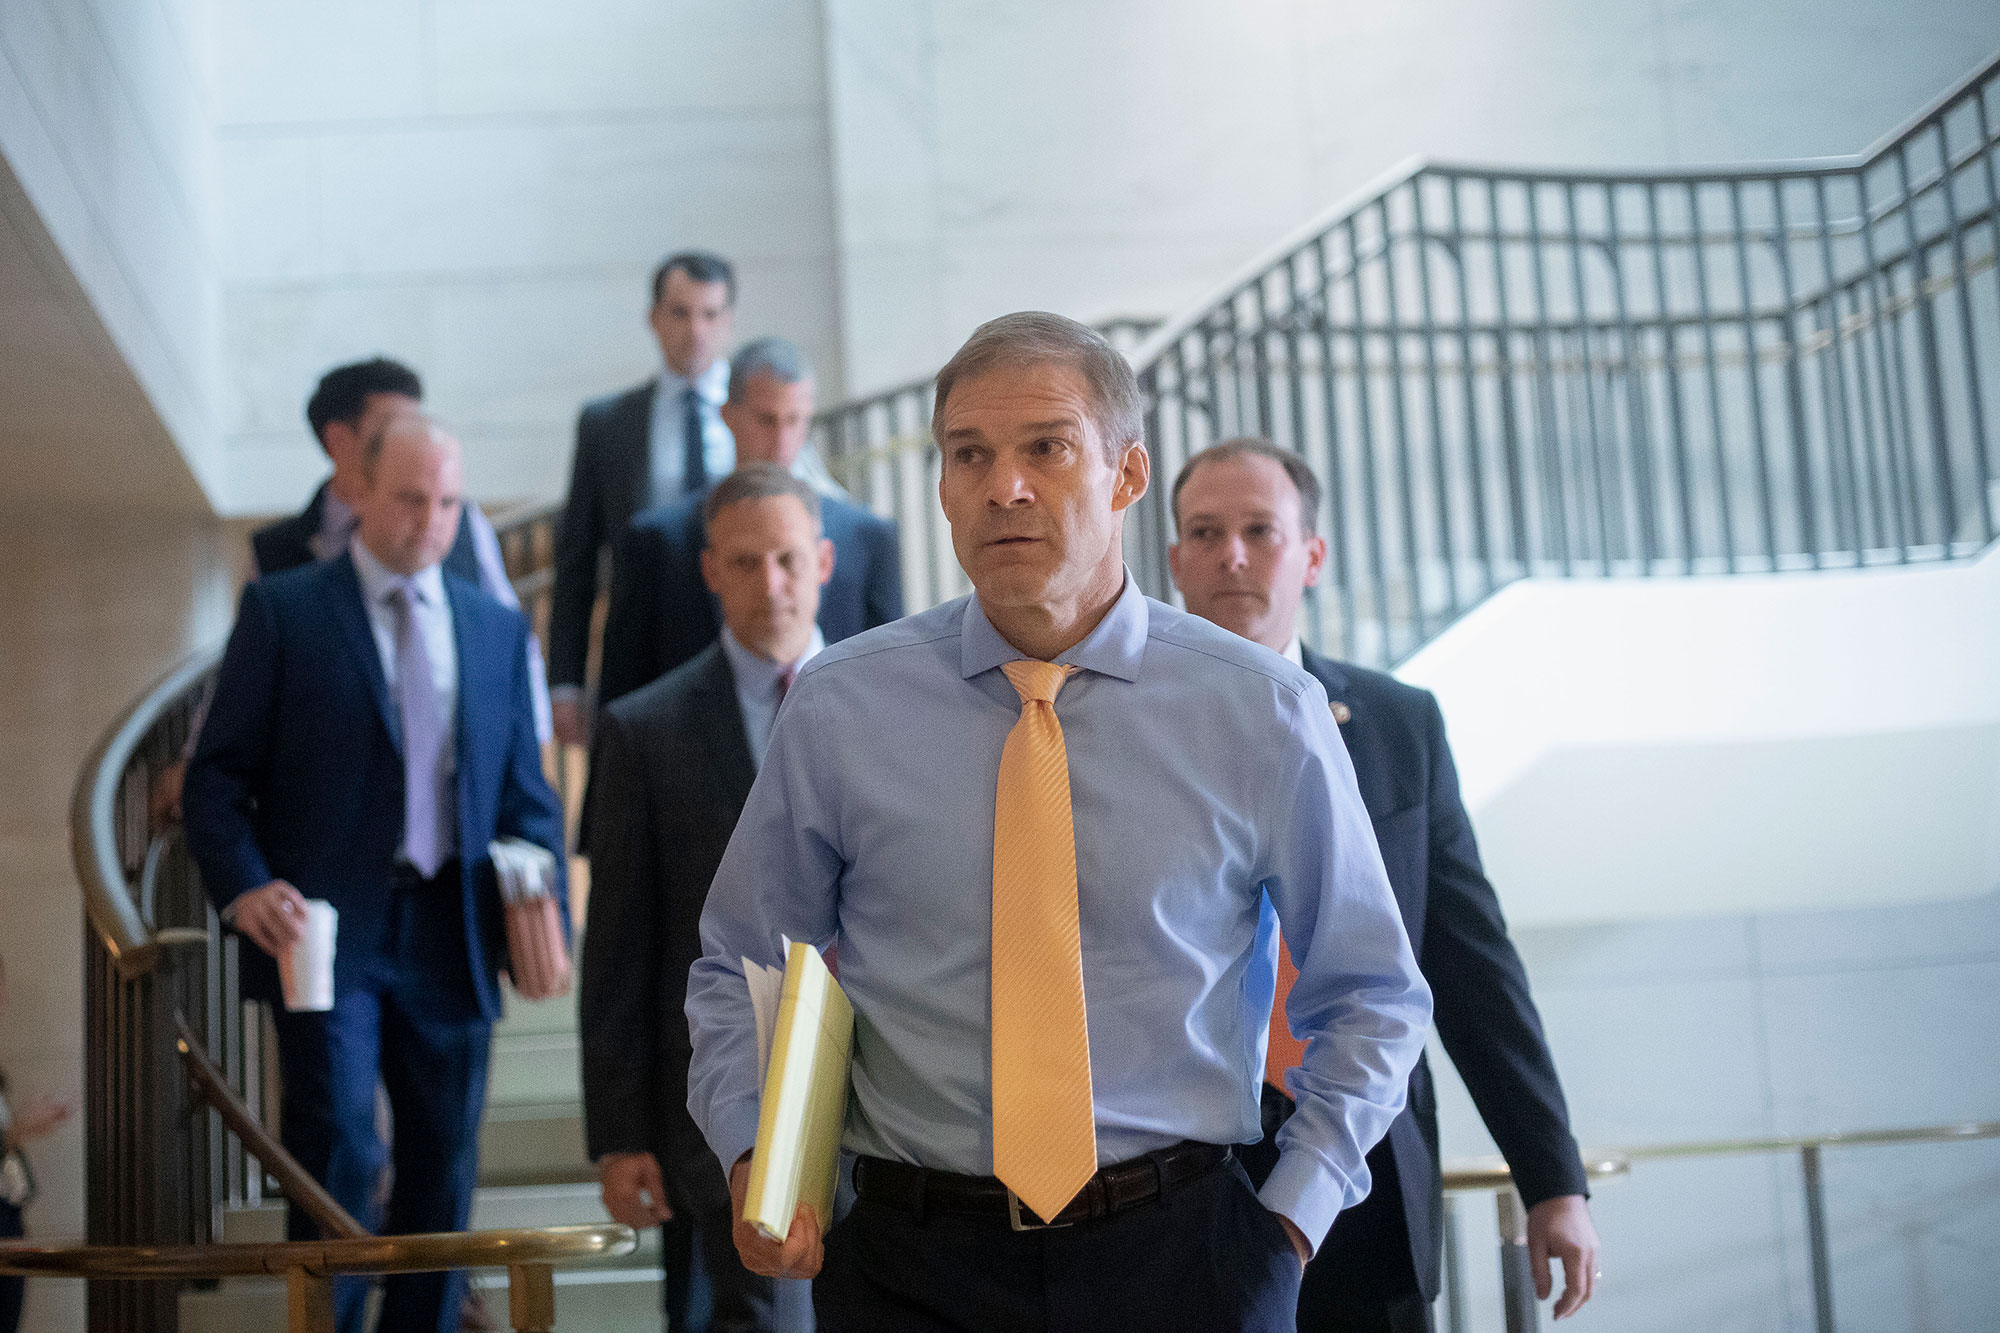 Rep. Jim Jordan, R-Ohio, arrives at the Capitol in Washington, on Thursday, October 3.